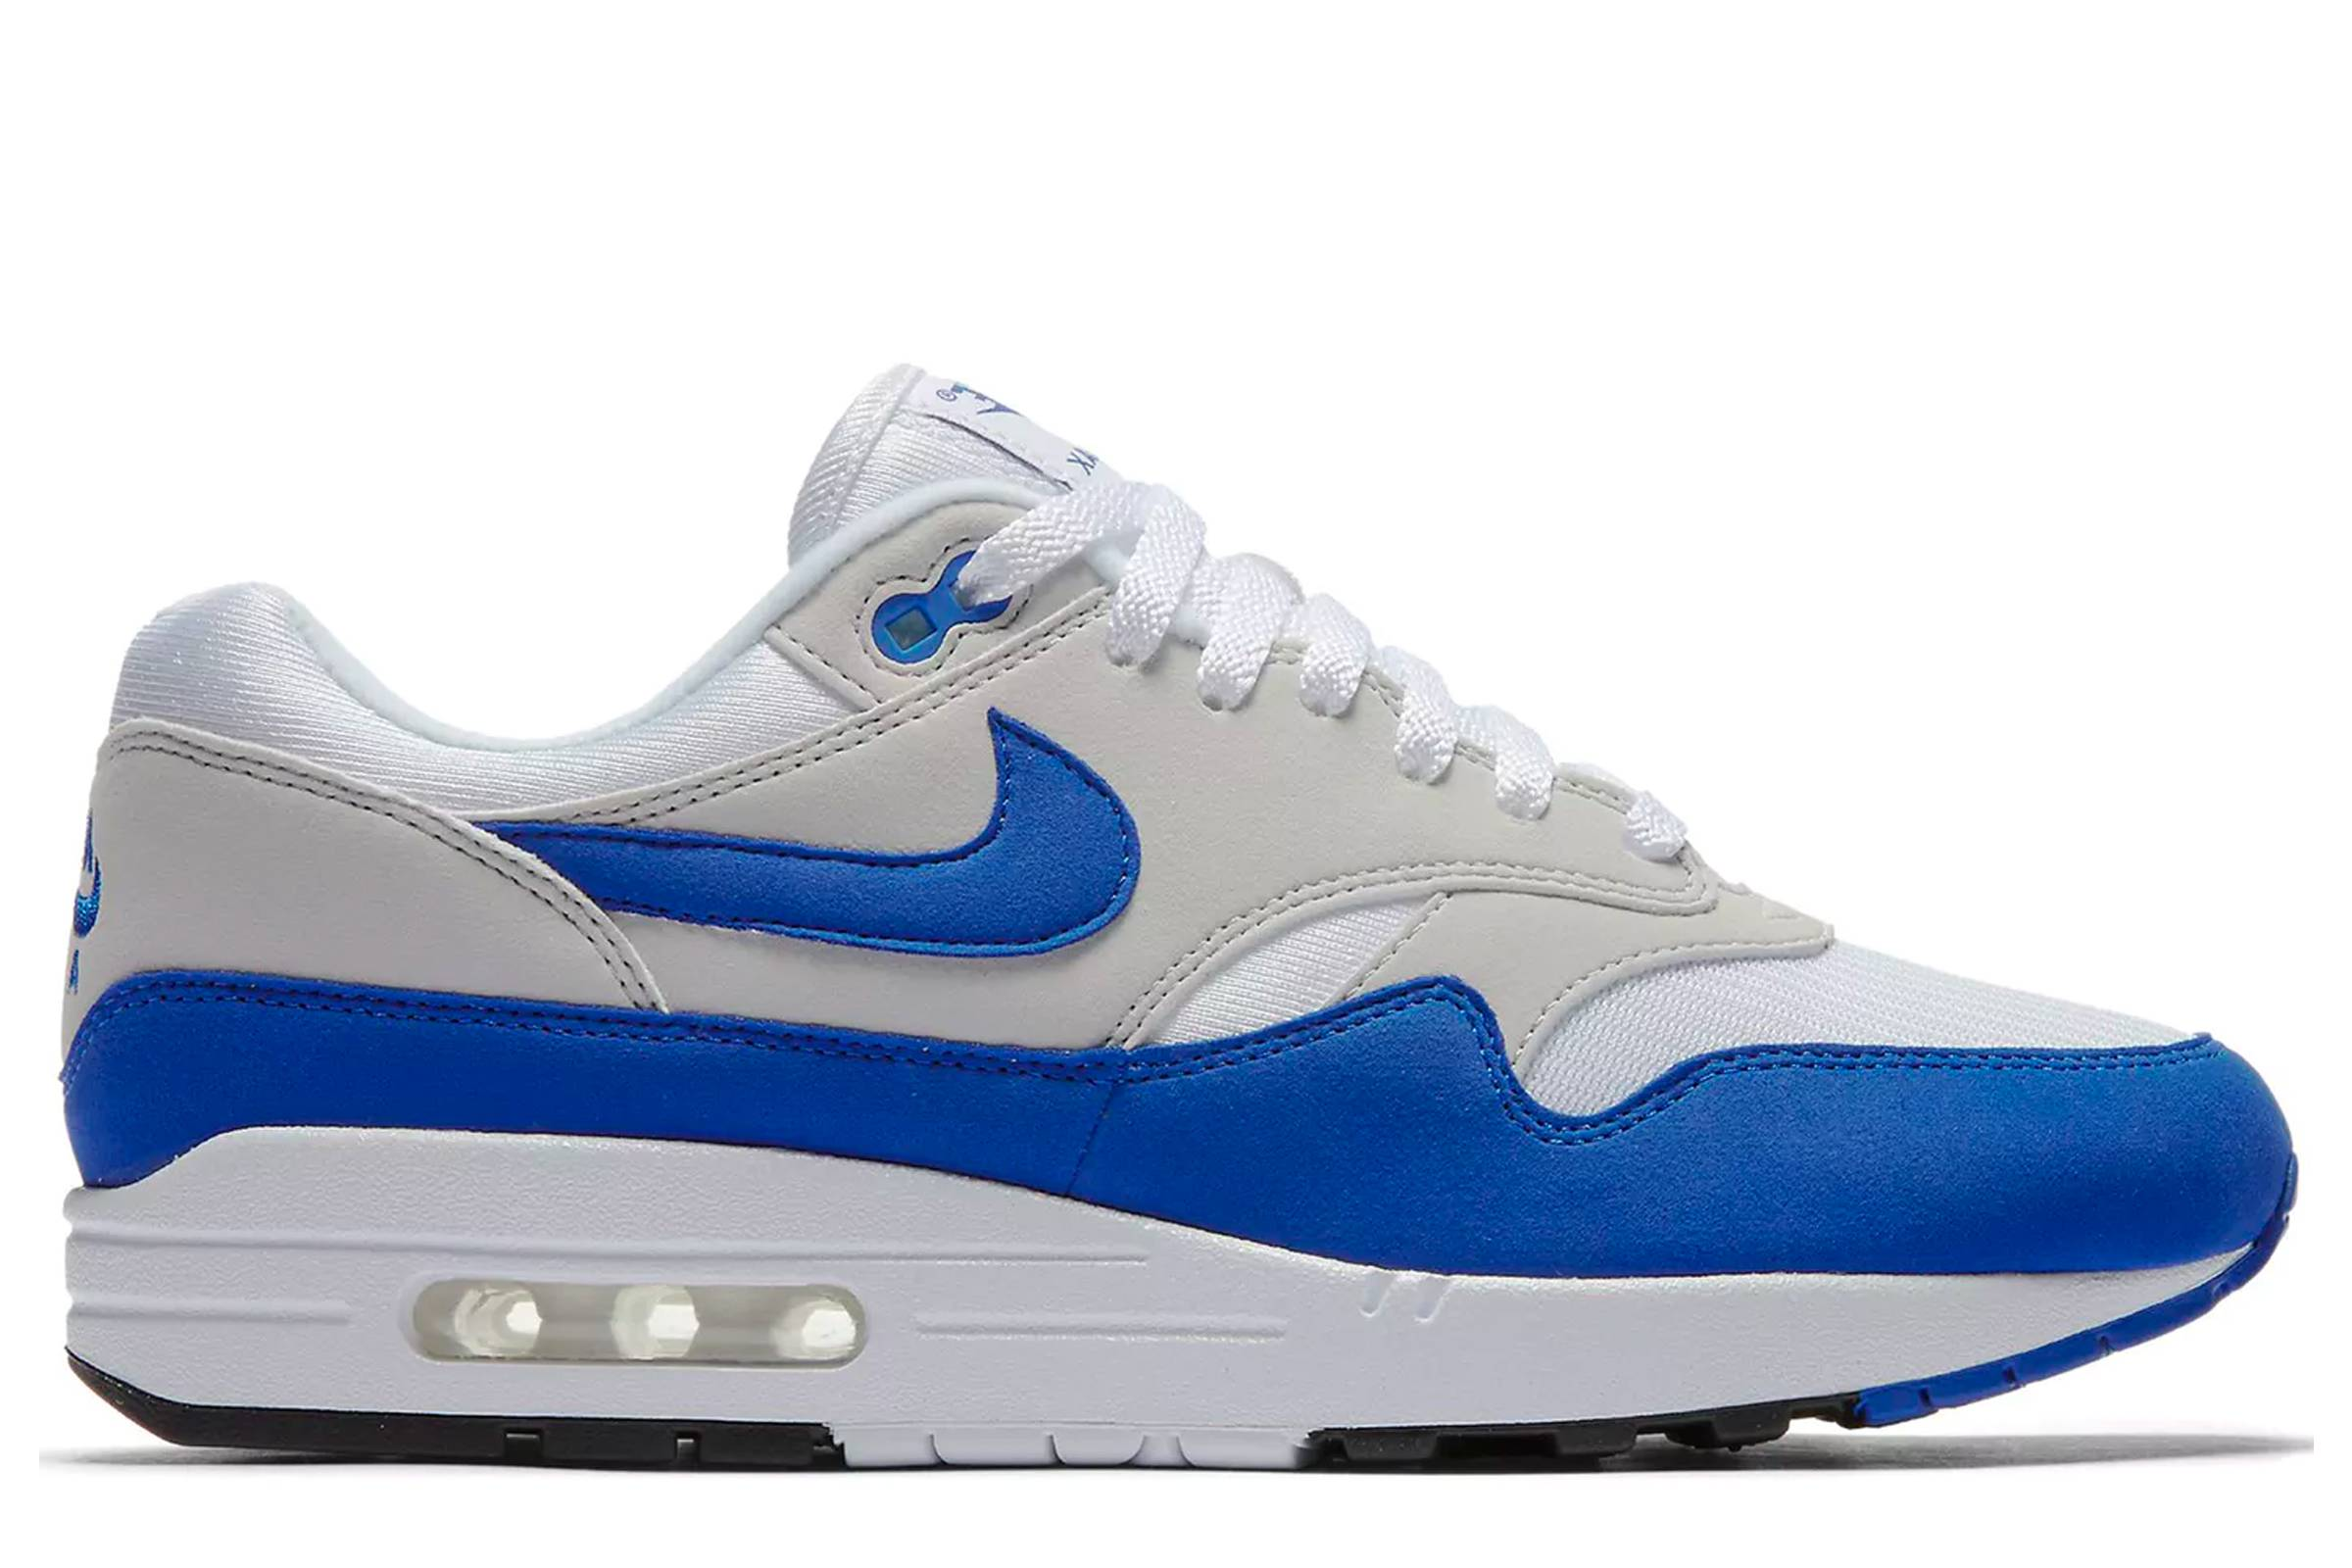 1ec8042846 The Birth of Air: A History of the Air Max 1 - Air Max 1 History ...